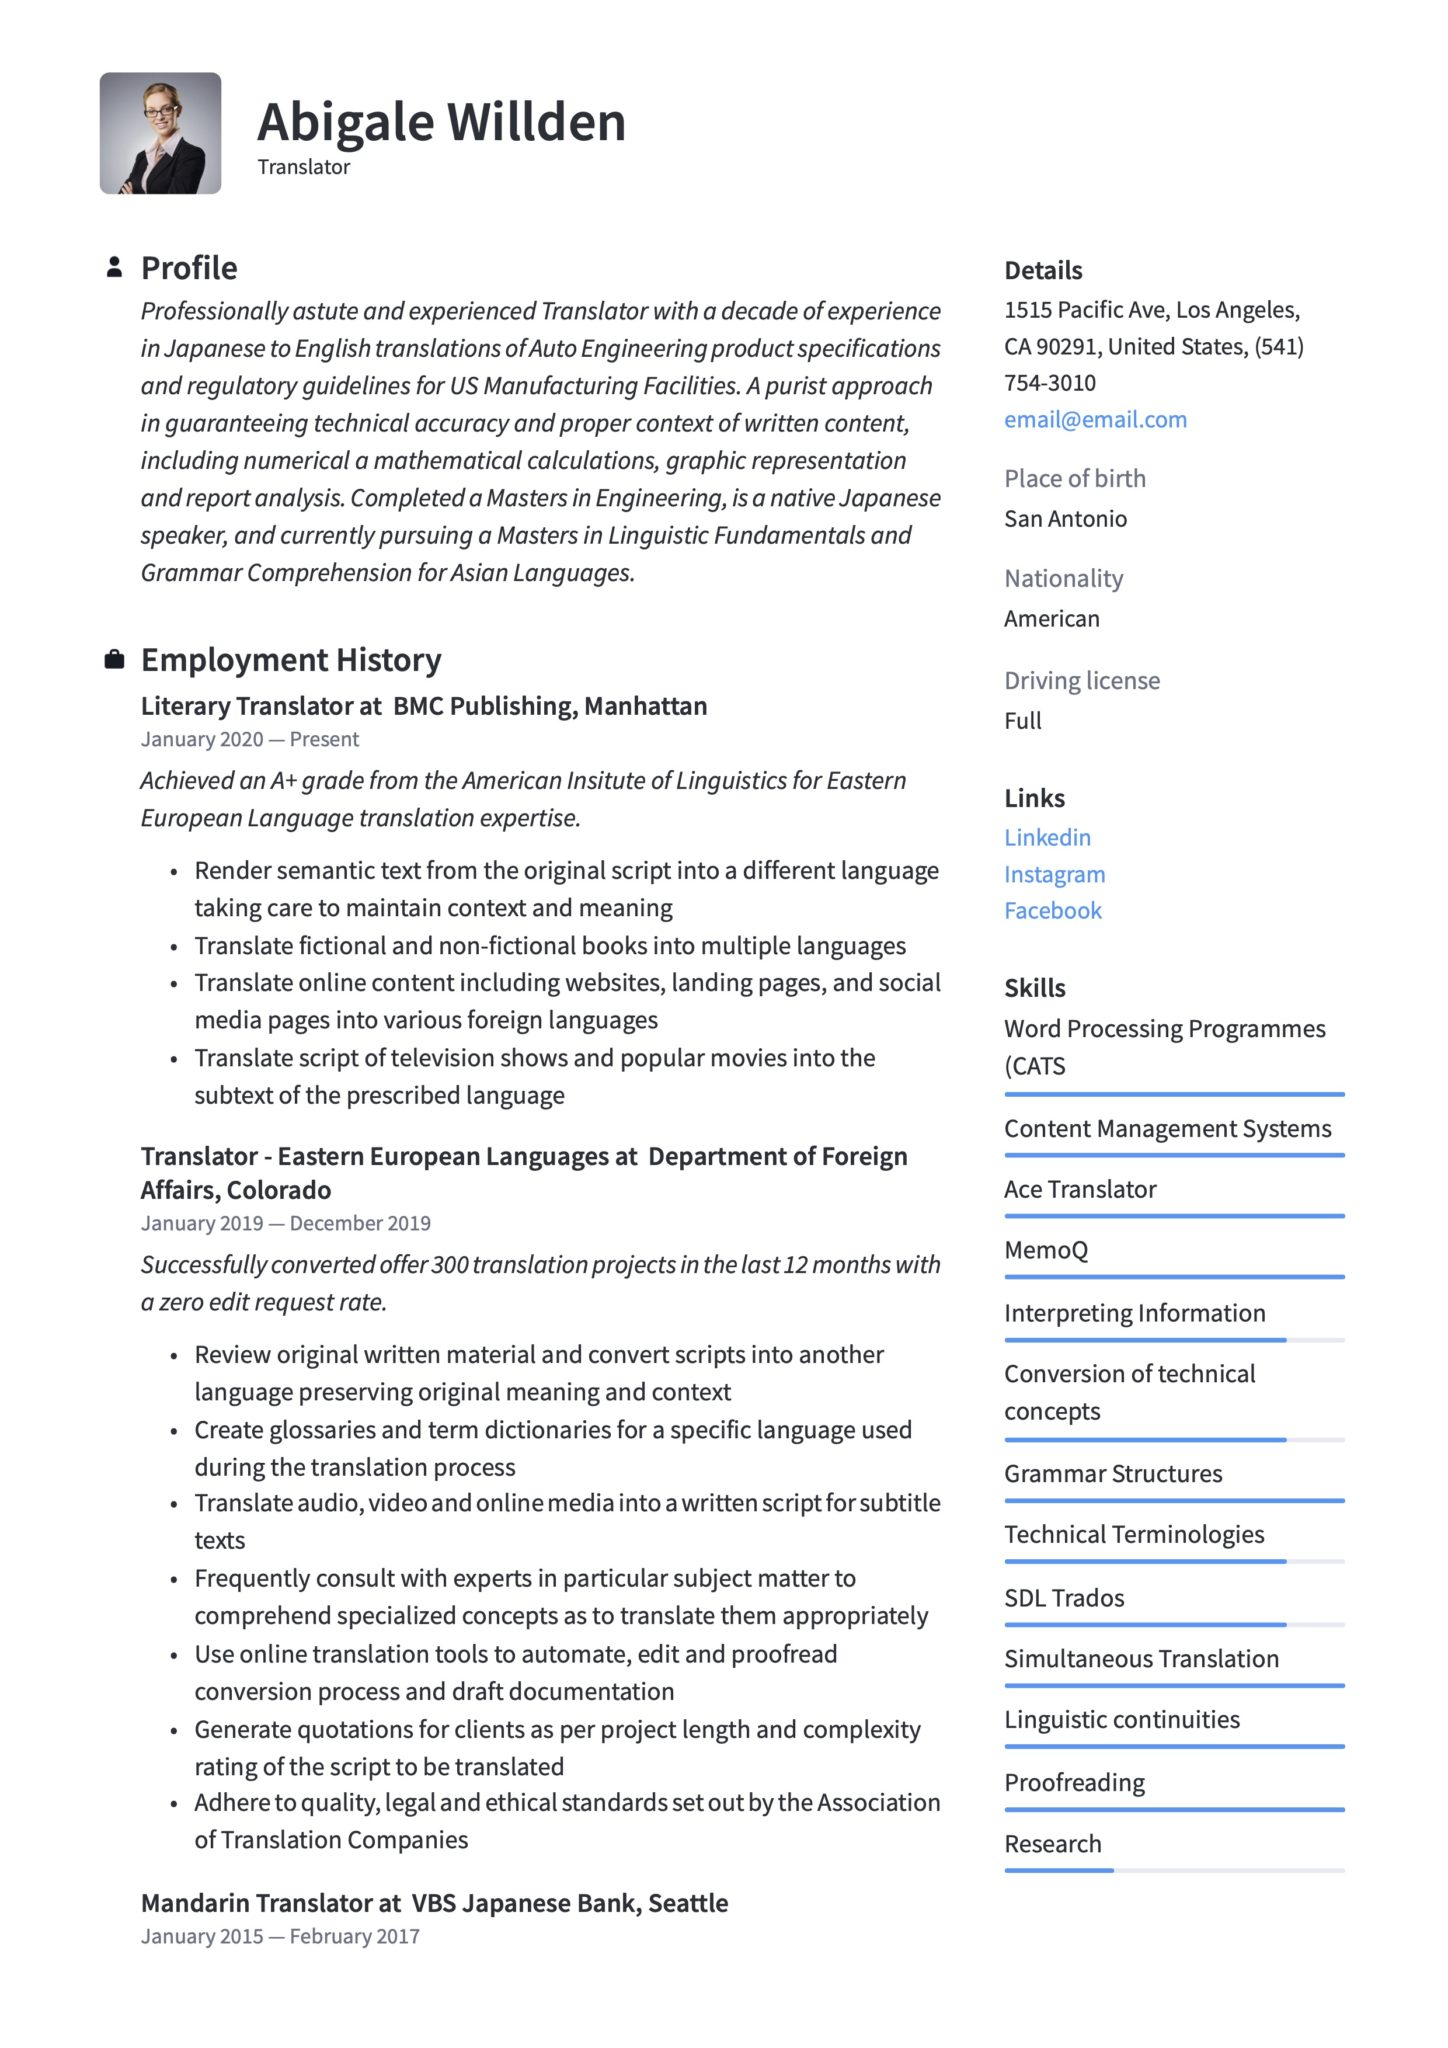 translator resume writing guide templates sample scaled broadcast examples epic today Resume Translator Resume Sample